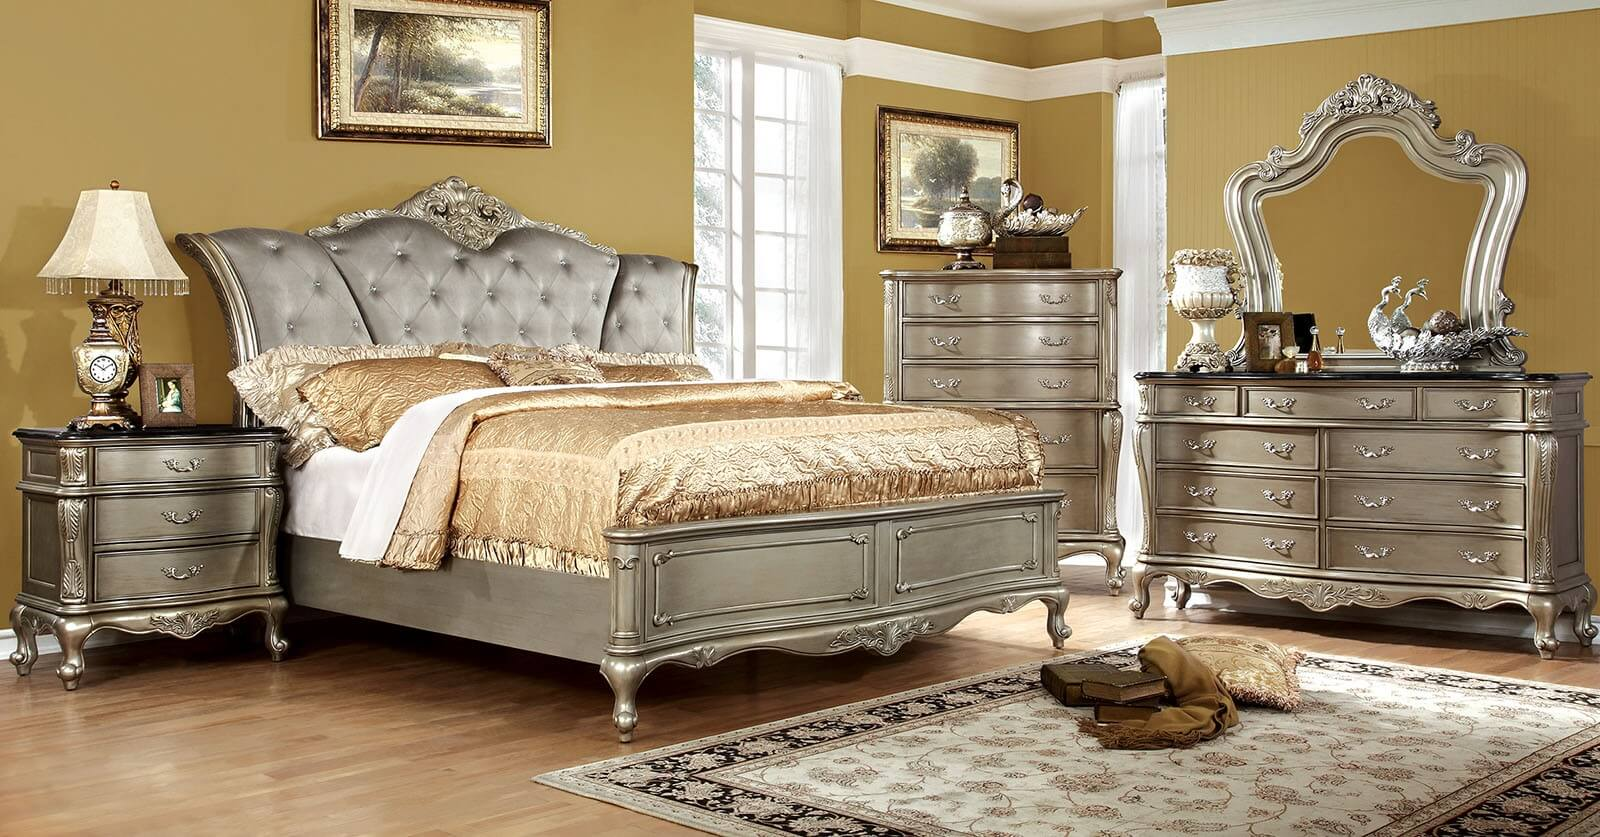 Ohara bedroom set by furniture of america for American bedroom furniture designs